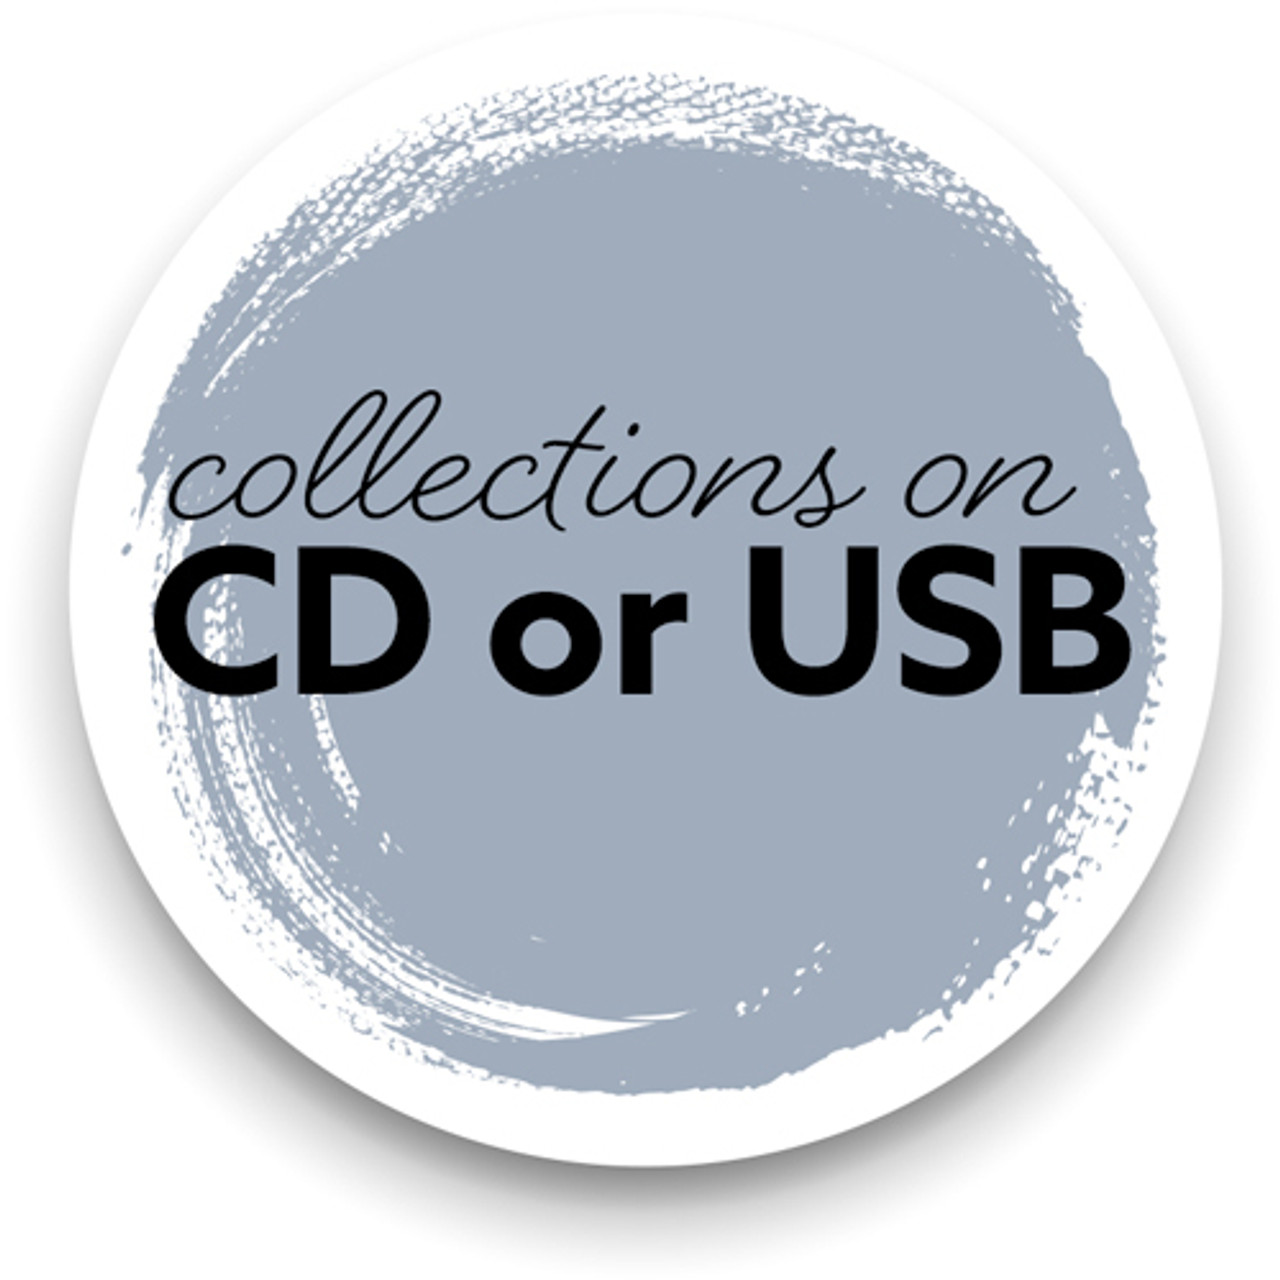 Collections on CD or USB